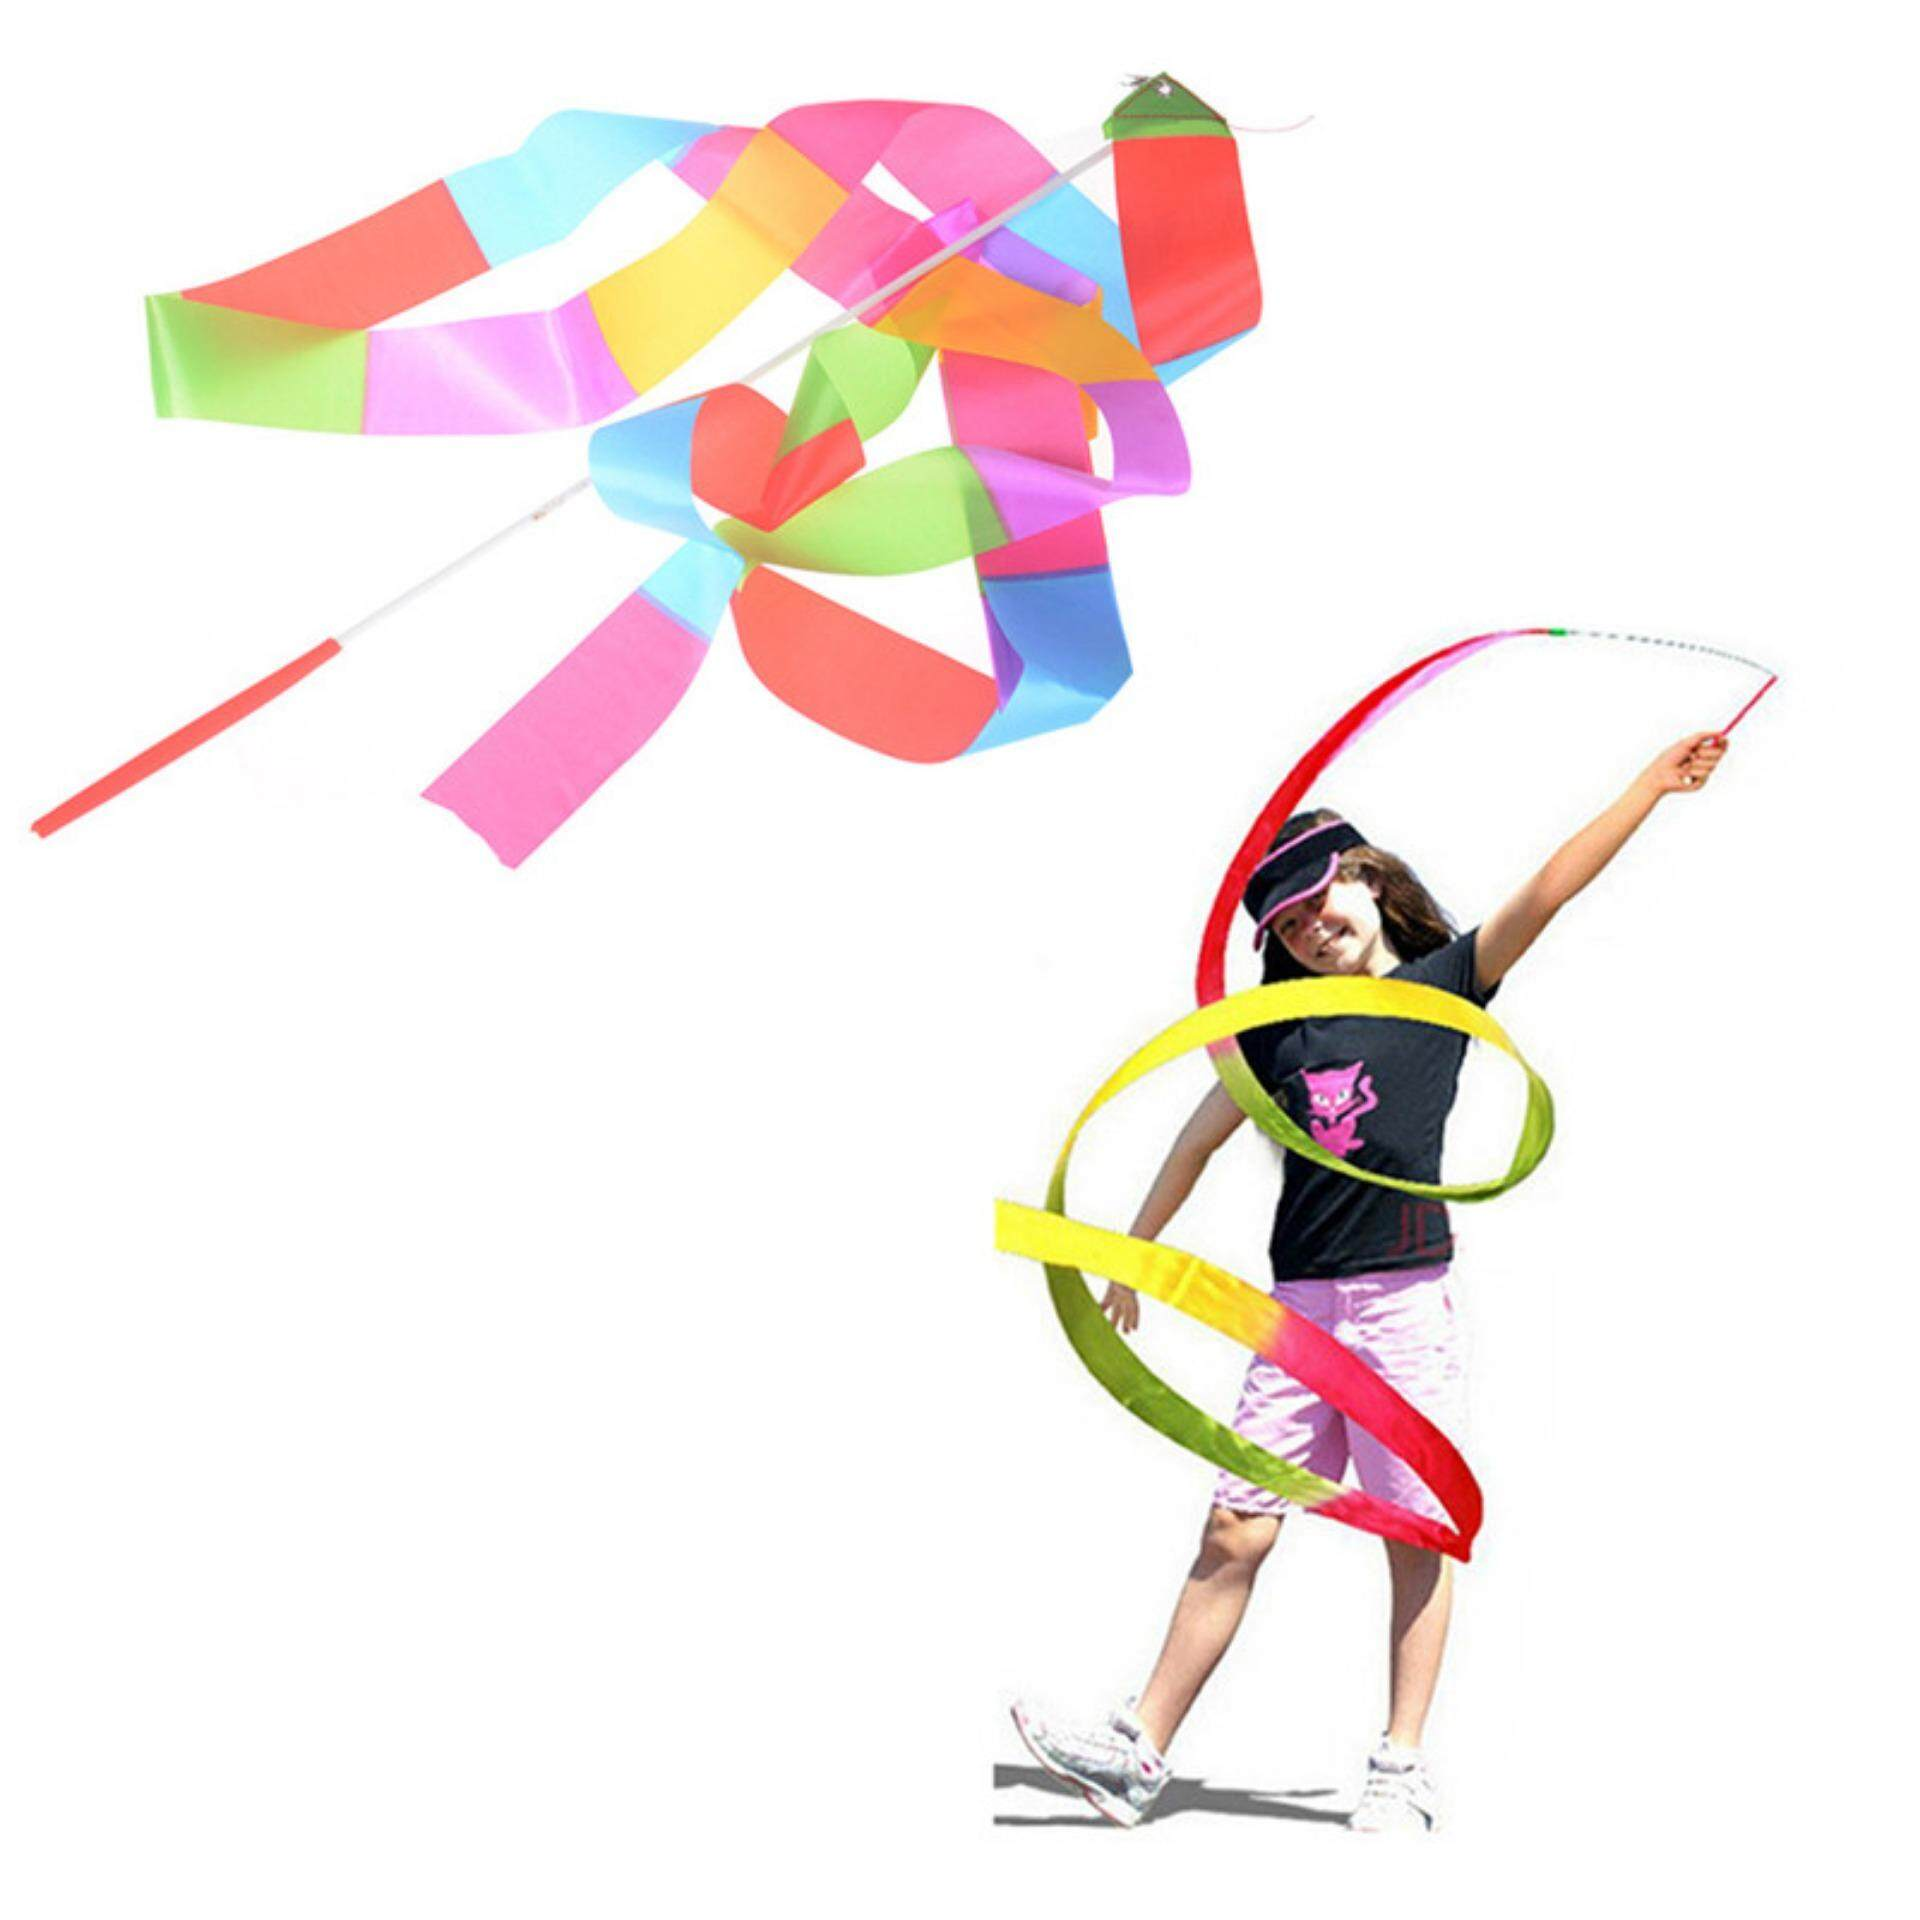 Fashion Colorful 4m Ribbon Gymnastics Dance Dancer Toy Kid Outdoor Sport Toy By Beautiful Speace.